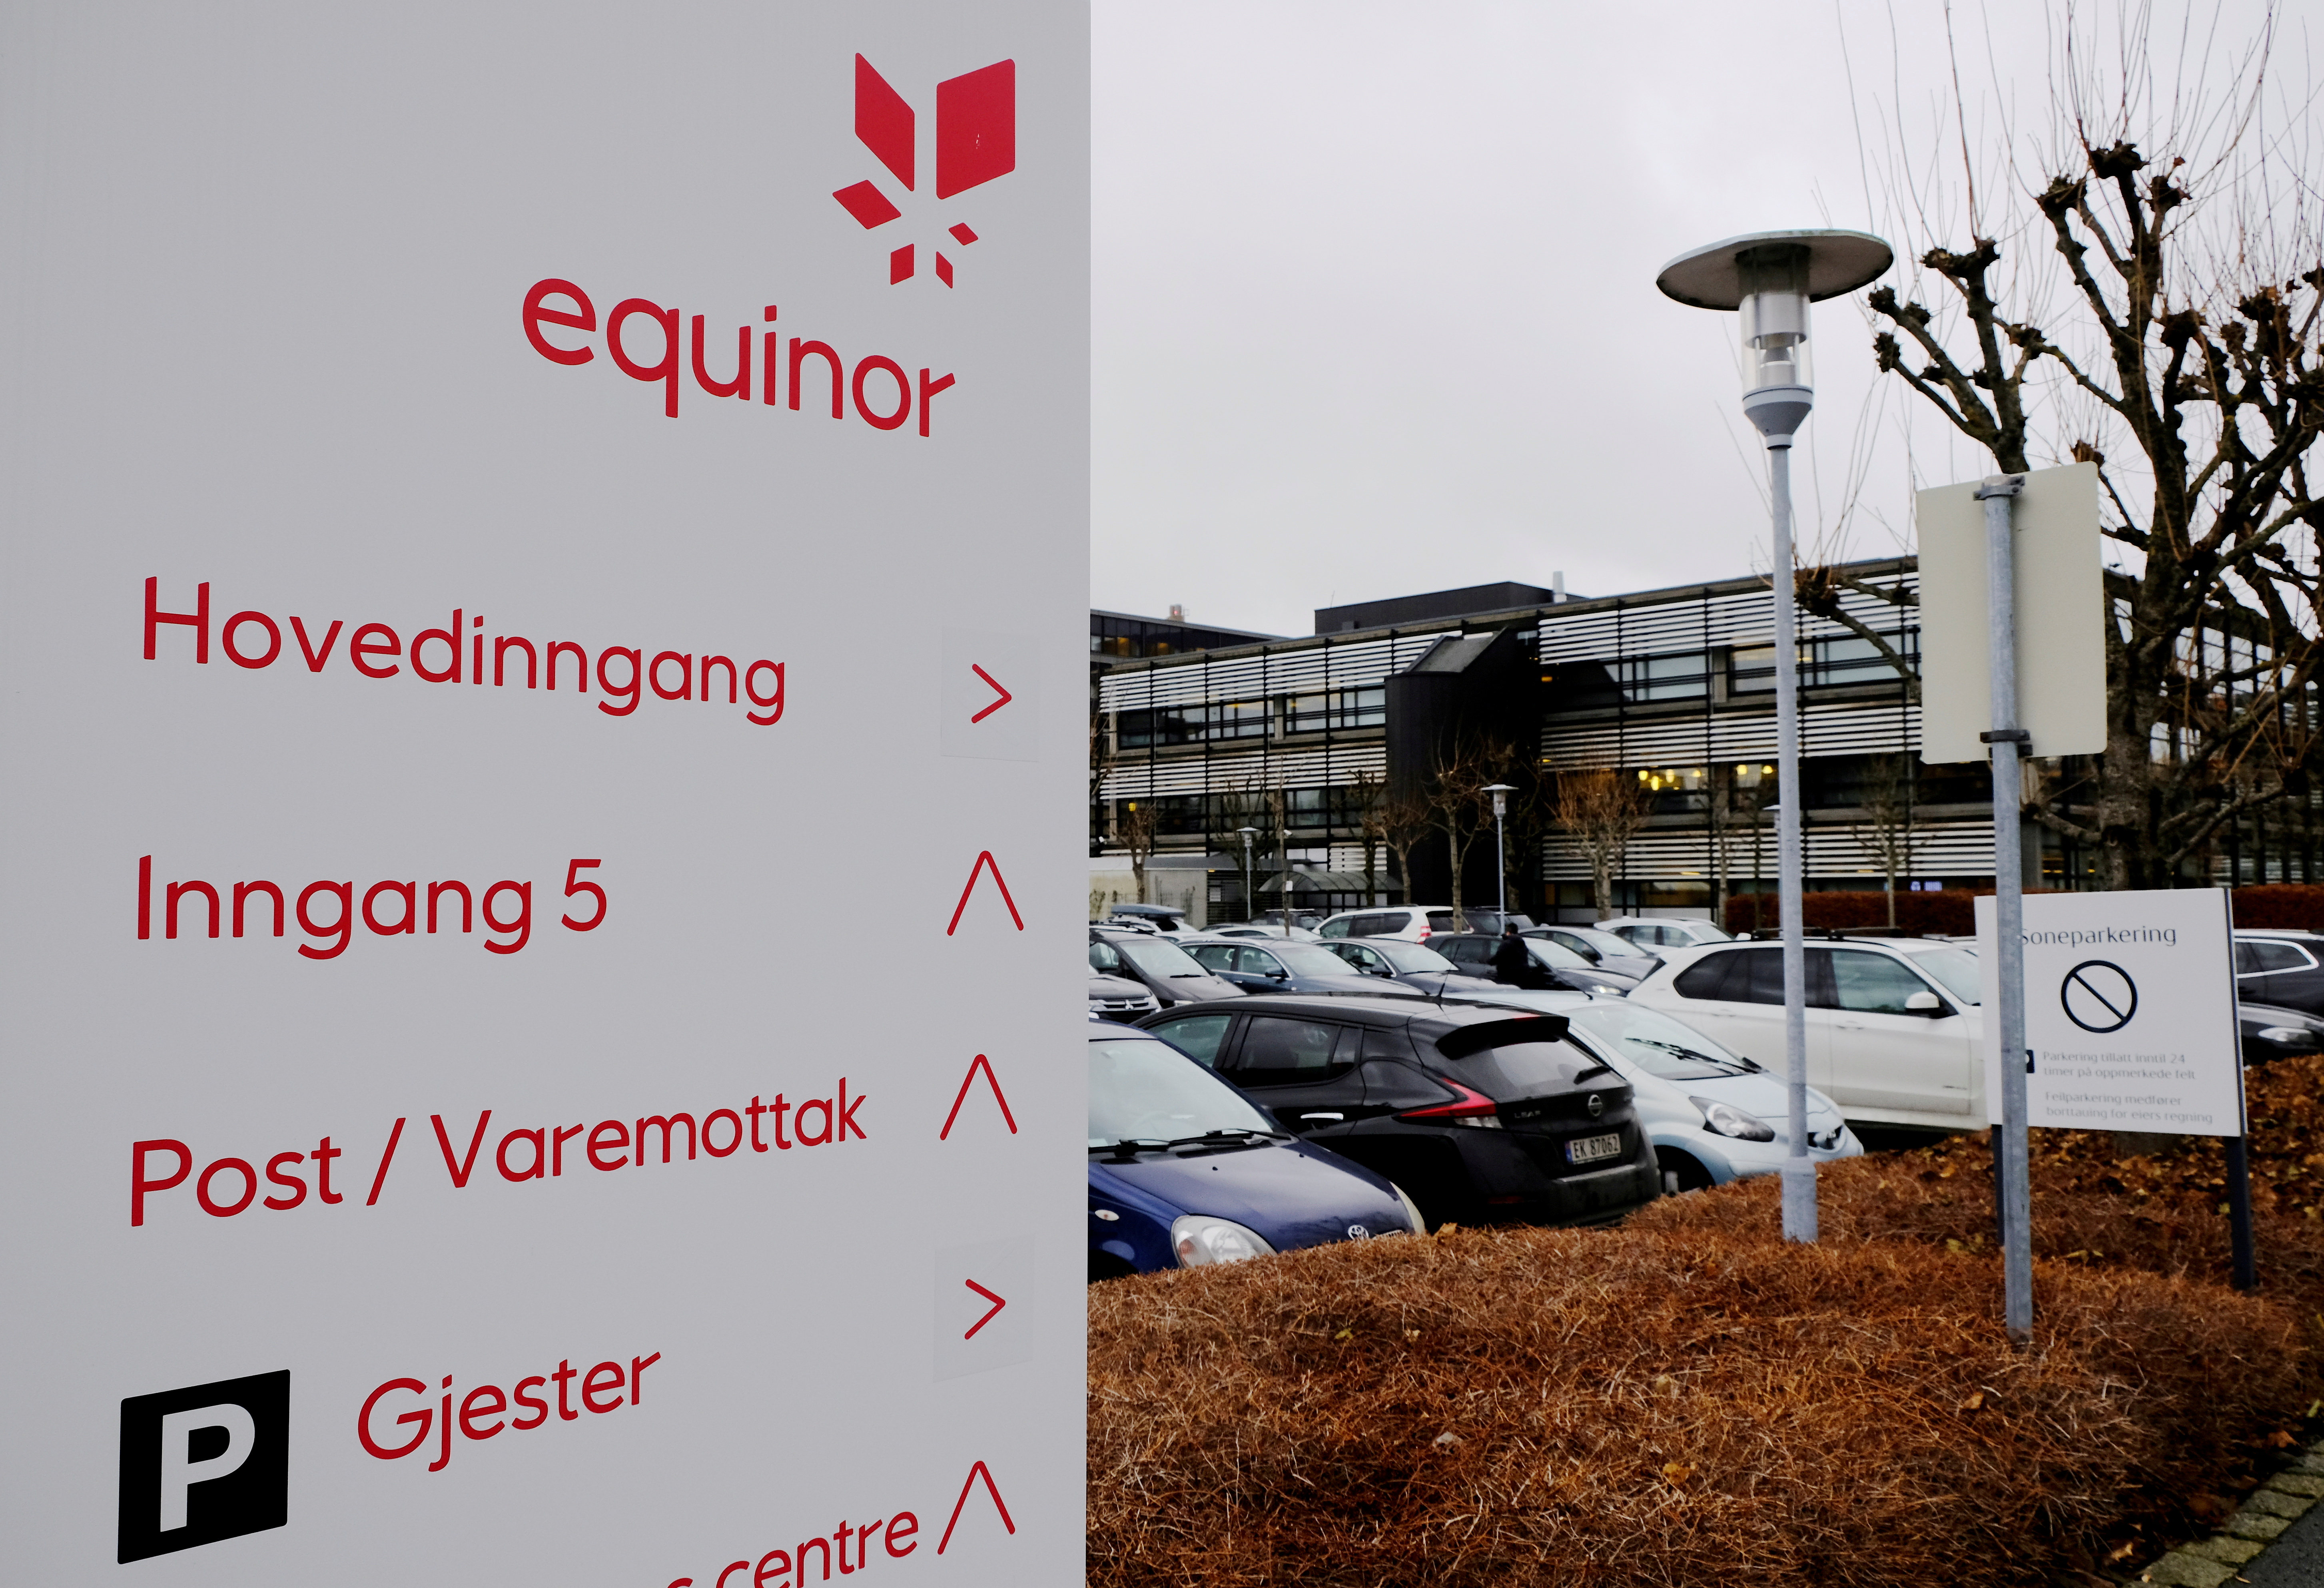 Equinor's logo is seen next to the company's headquarters in Stavanger, Norway December 5, 2019. REUTERS/Ints Kalnins